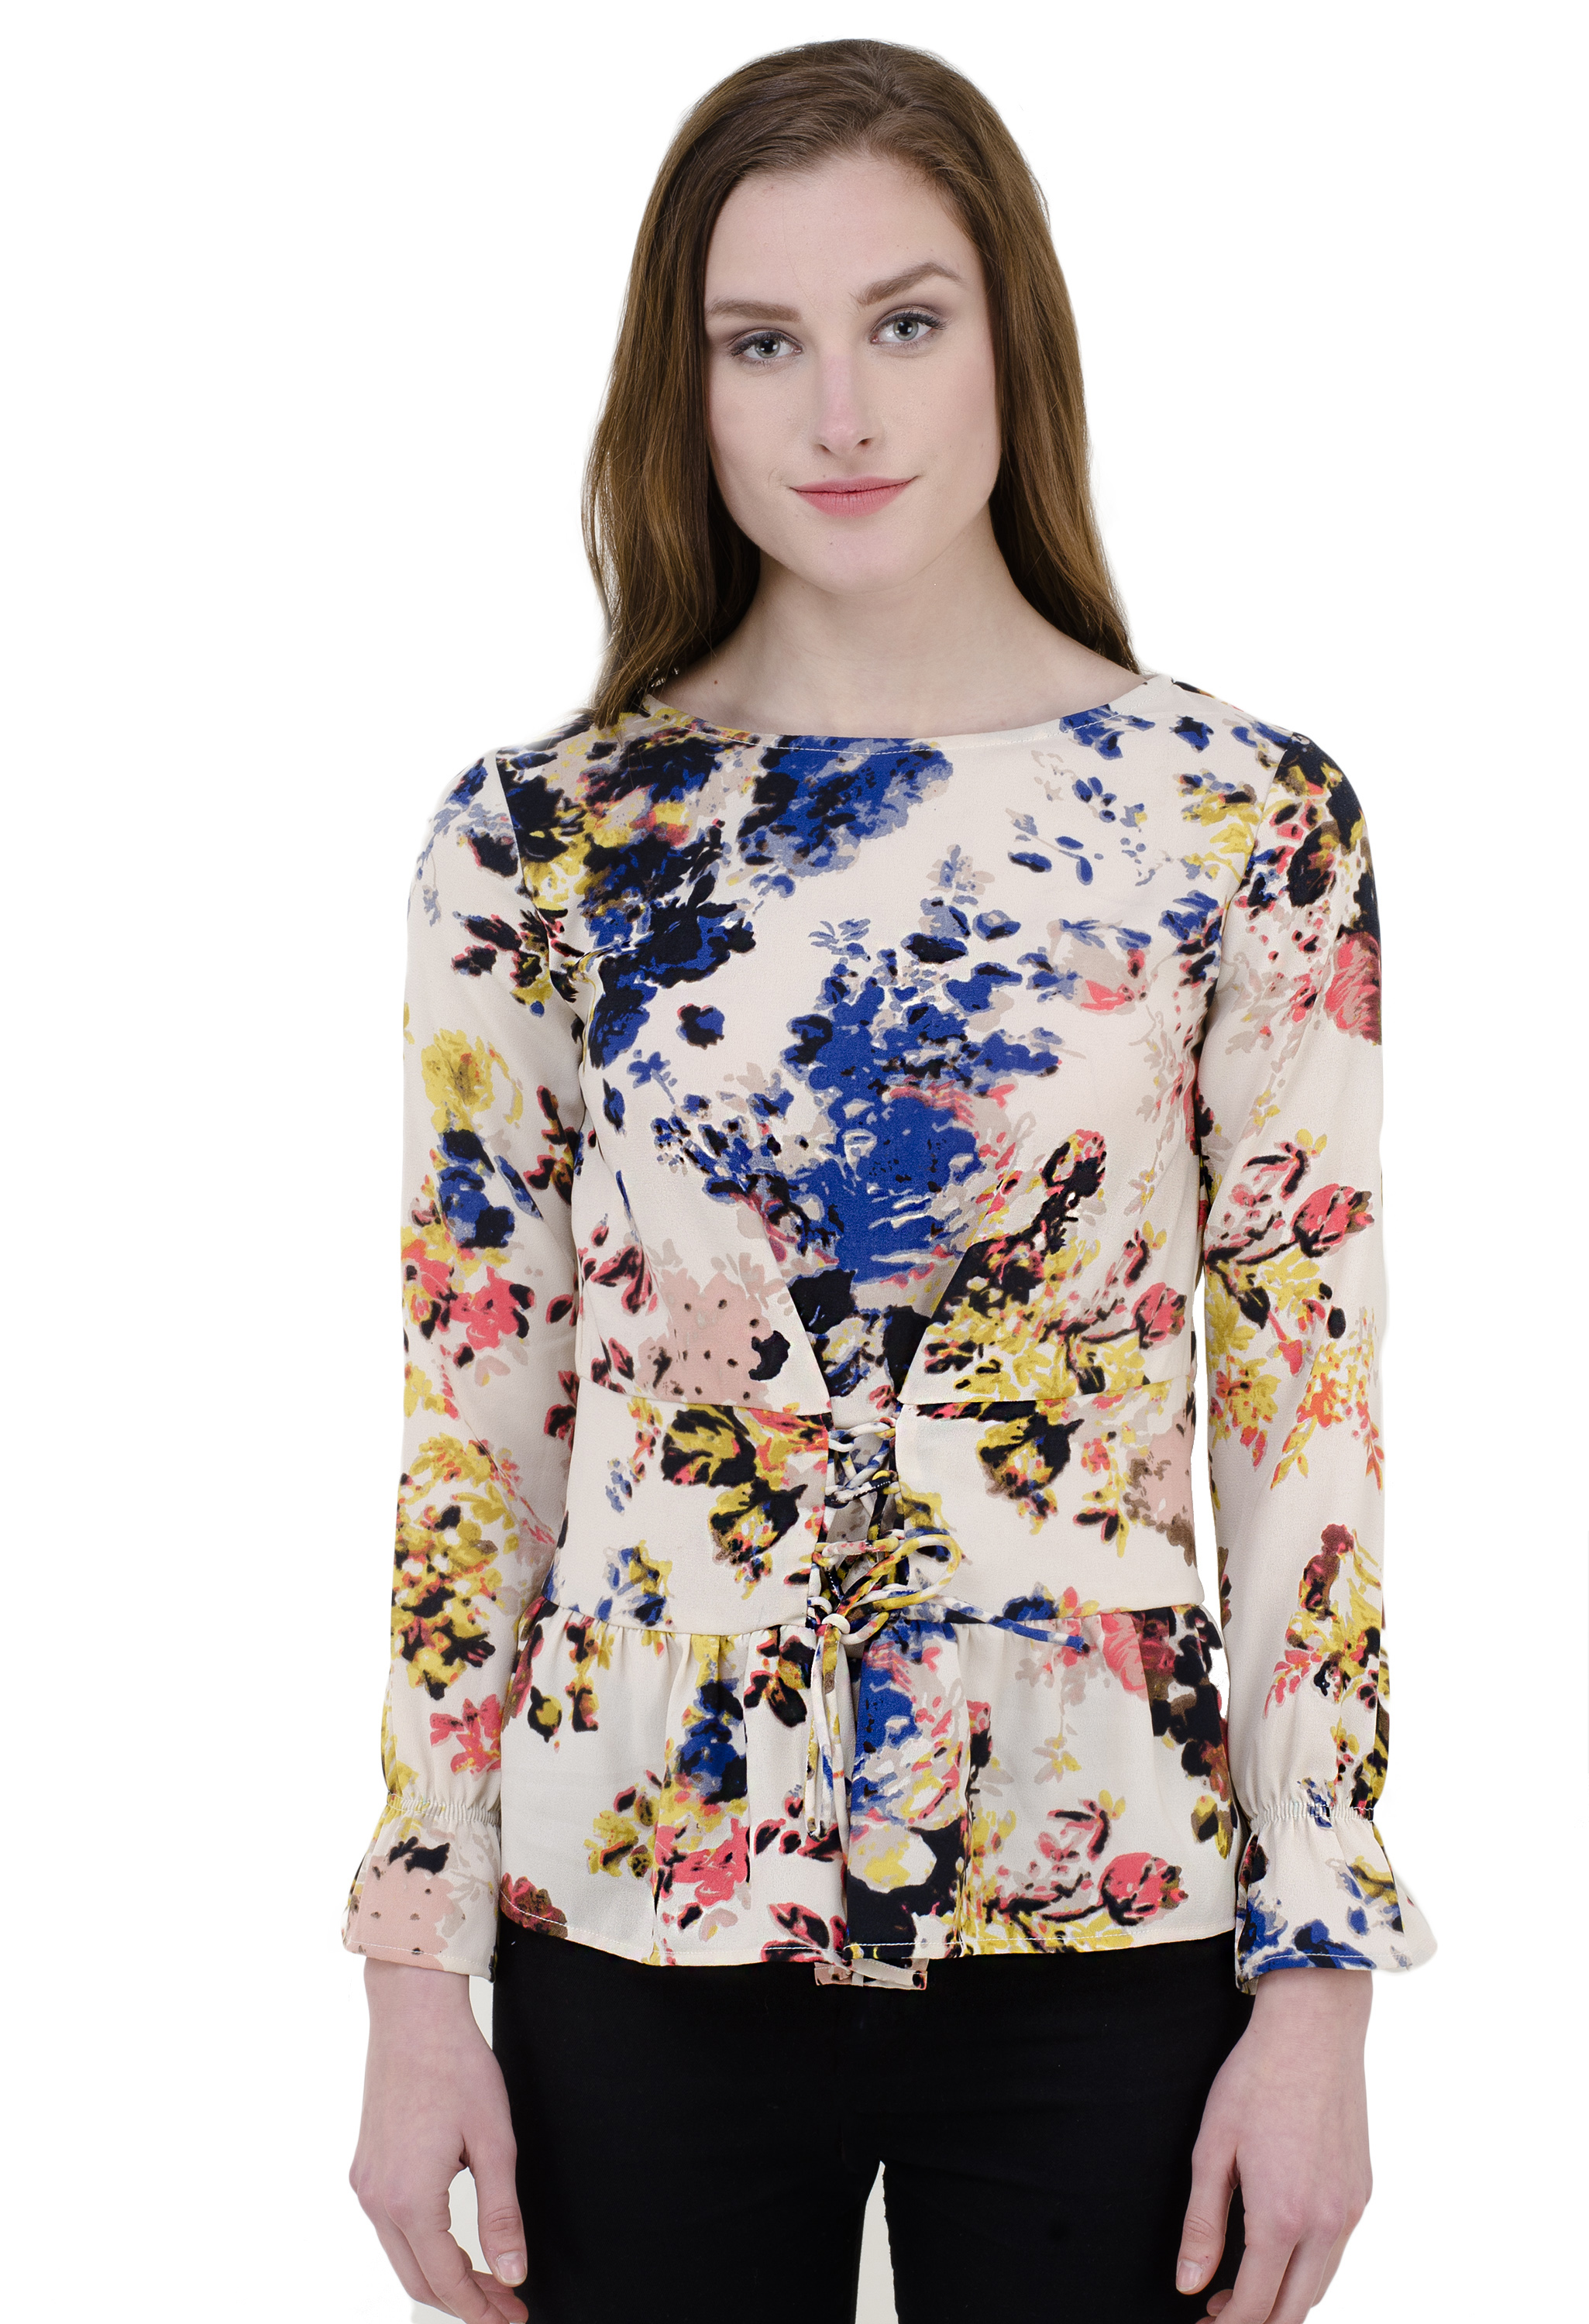 elioop Round Neck ,full Sleeve, Beautifull Color Print And Cross Detail On Cheast.1